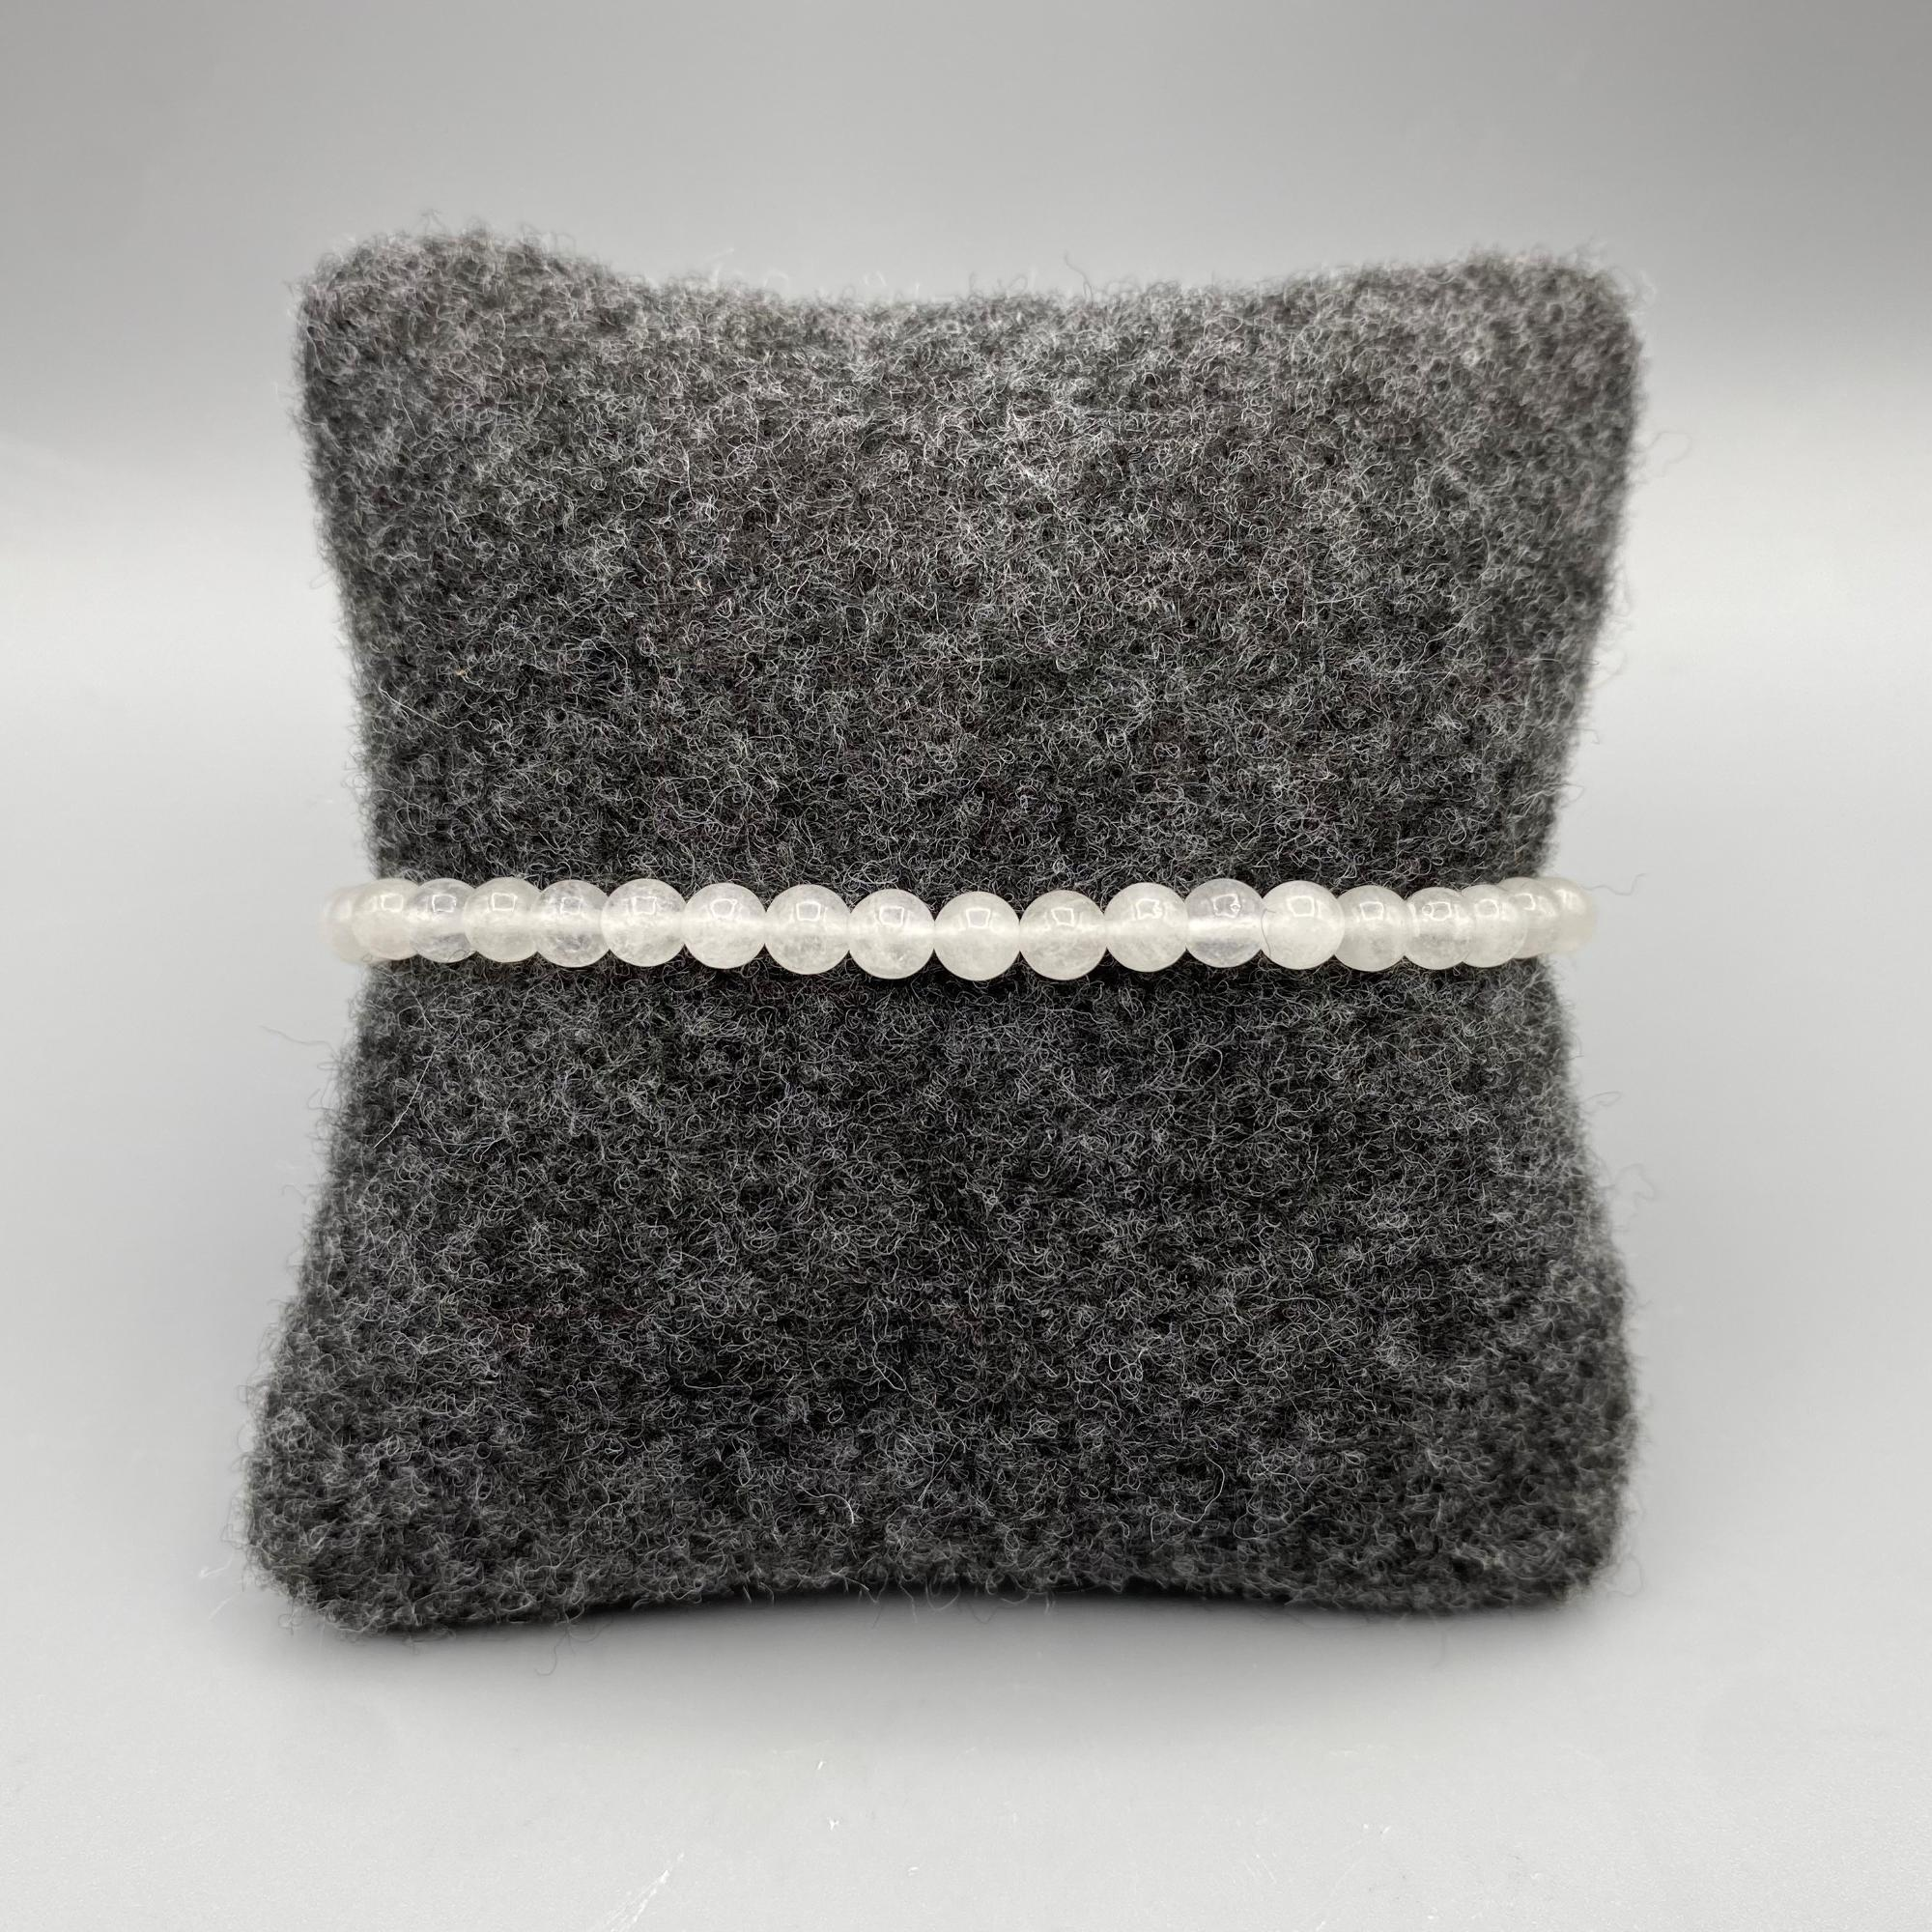 Power Mini Snow Quartz Bracelet - Focus